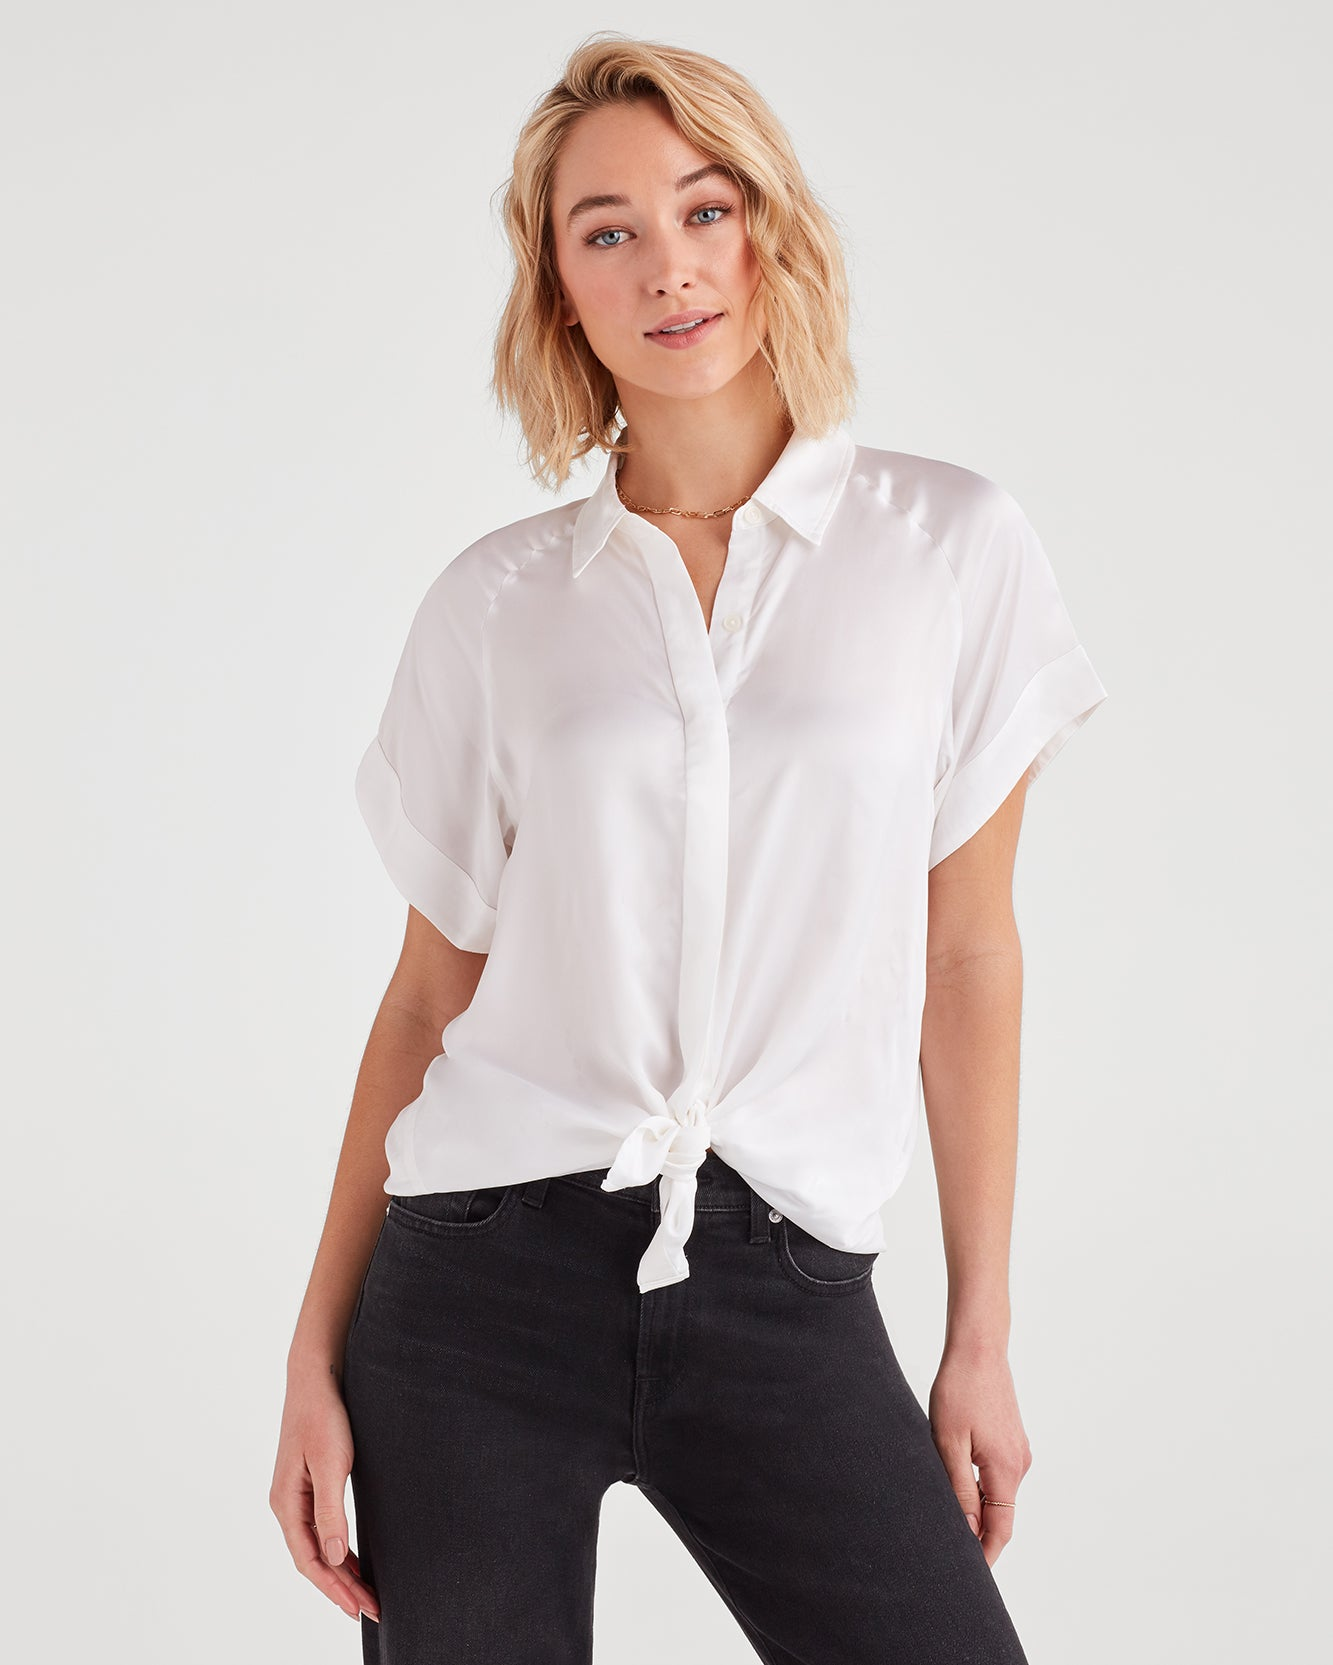 Image of Tie Front Short Sleeve Shirt in Soft White